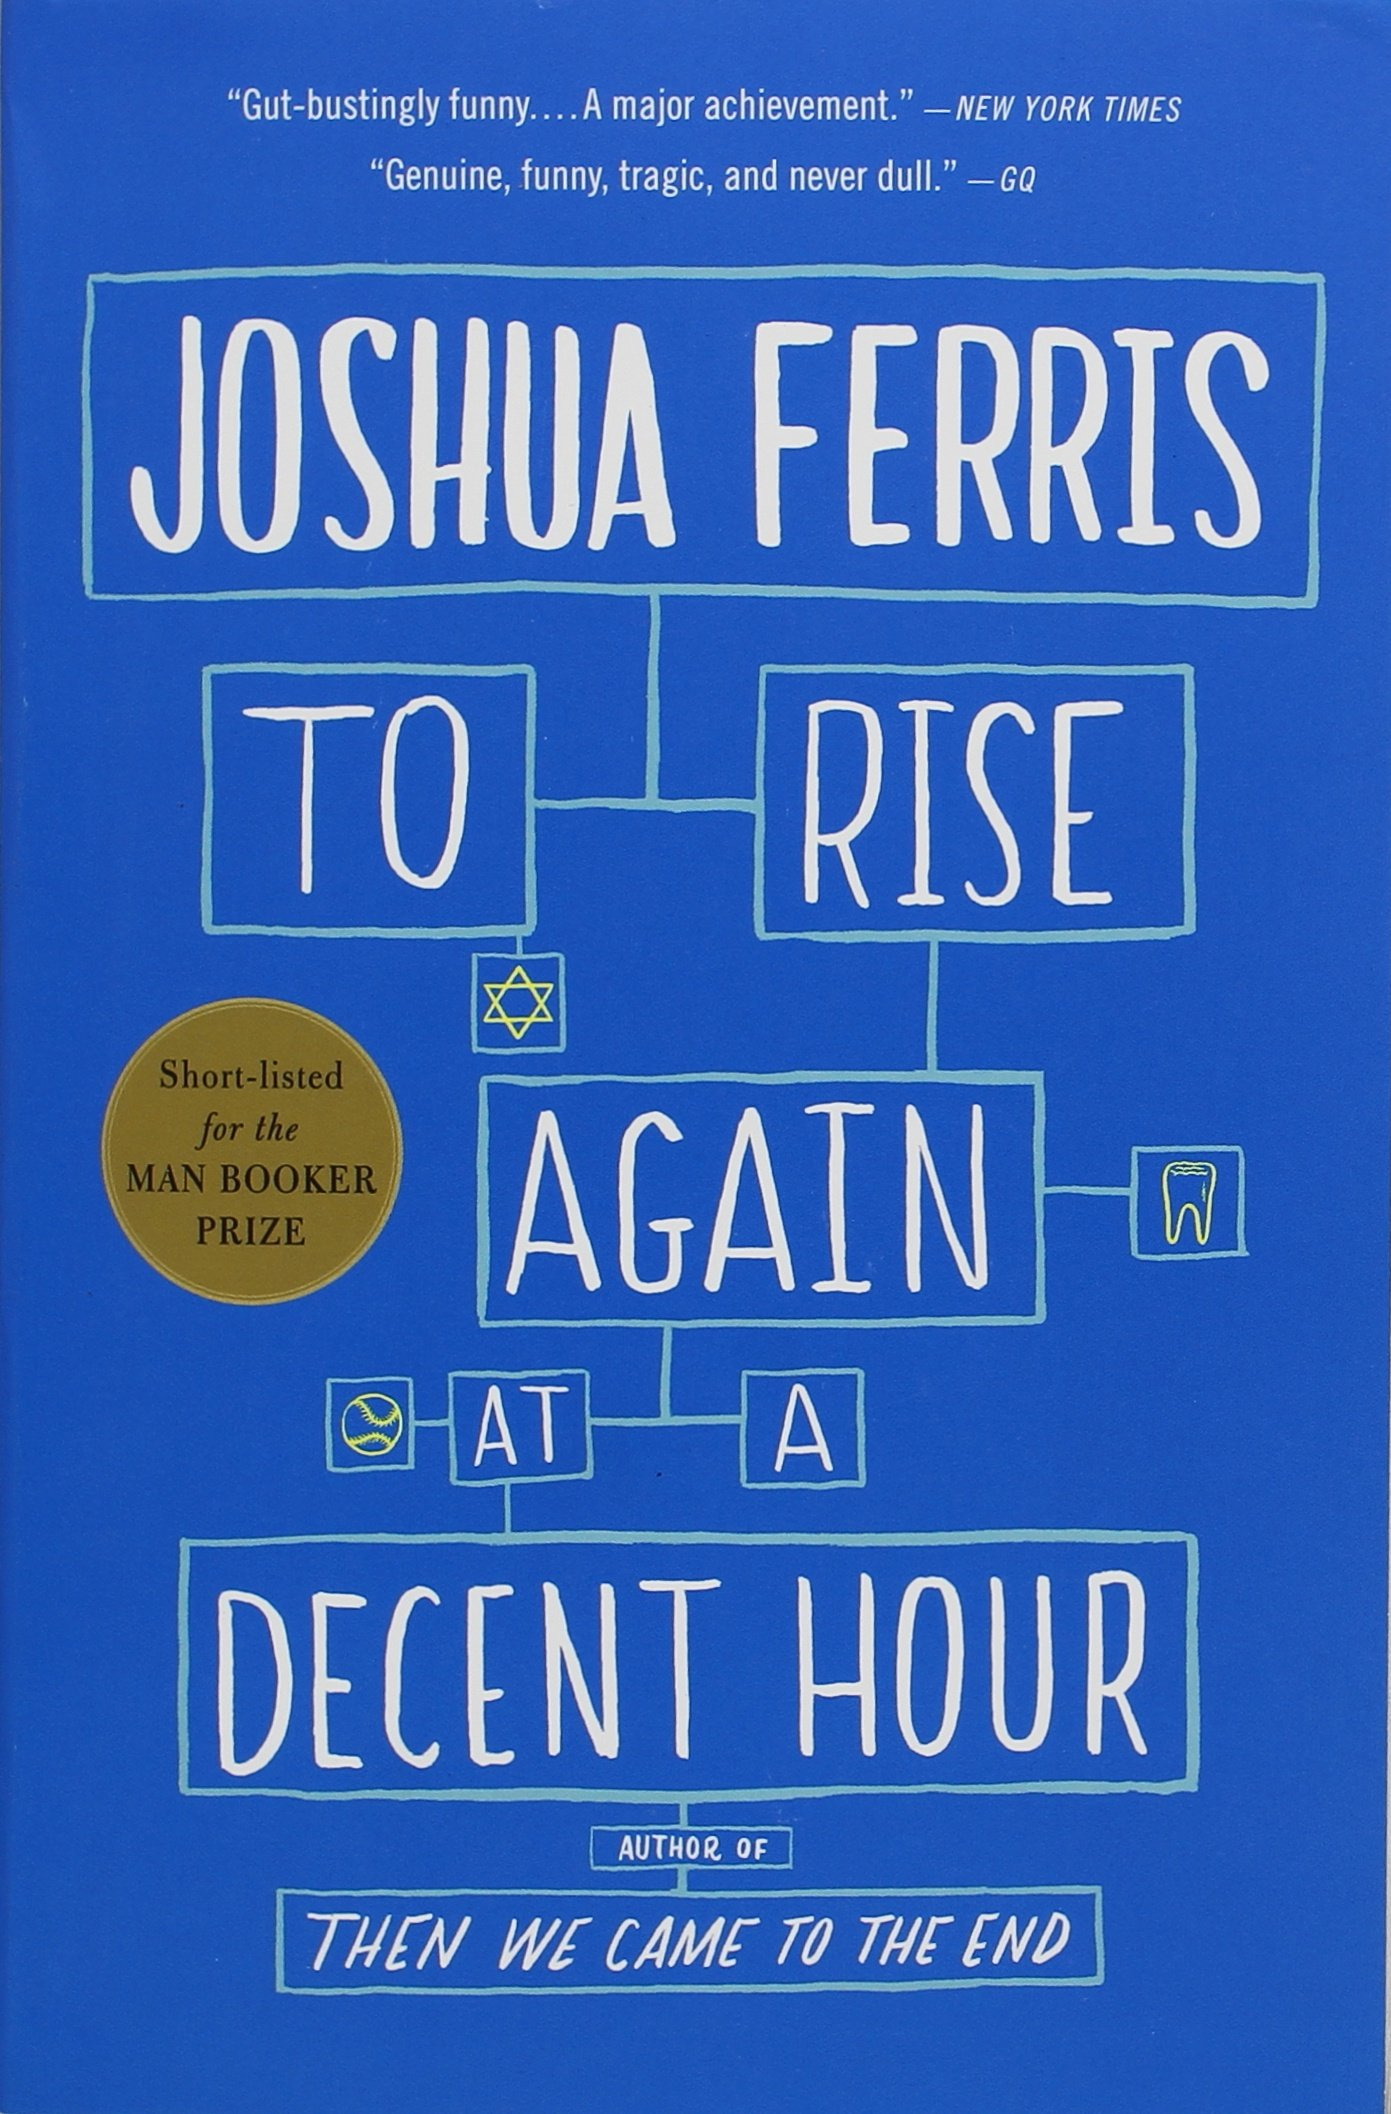 To Rise Again at Decent Hour by Joshua Ferris